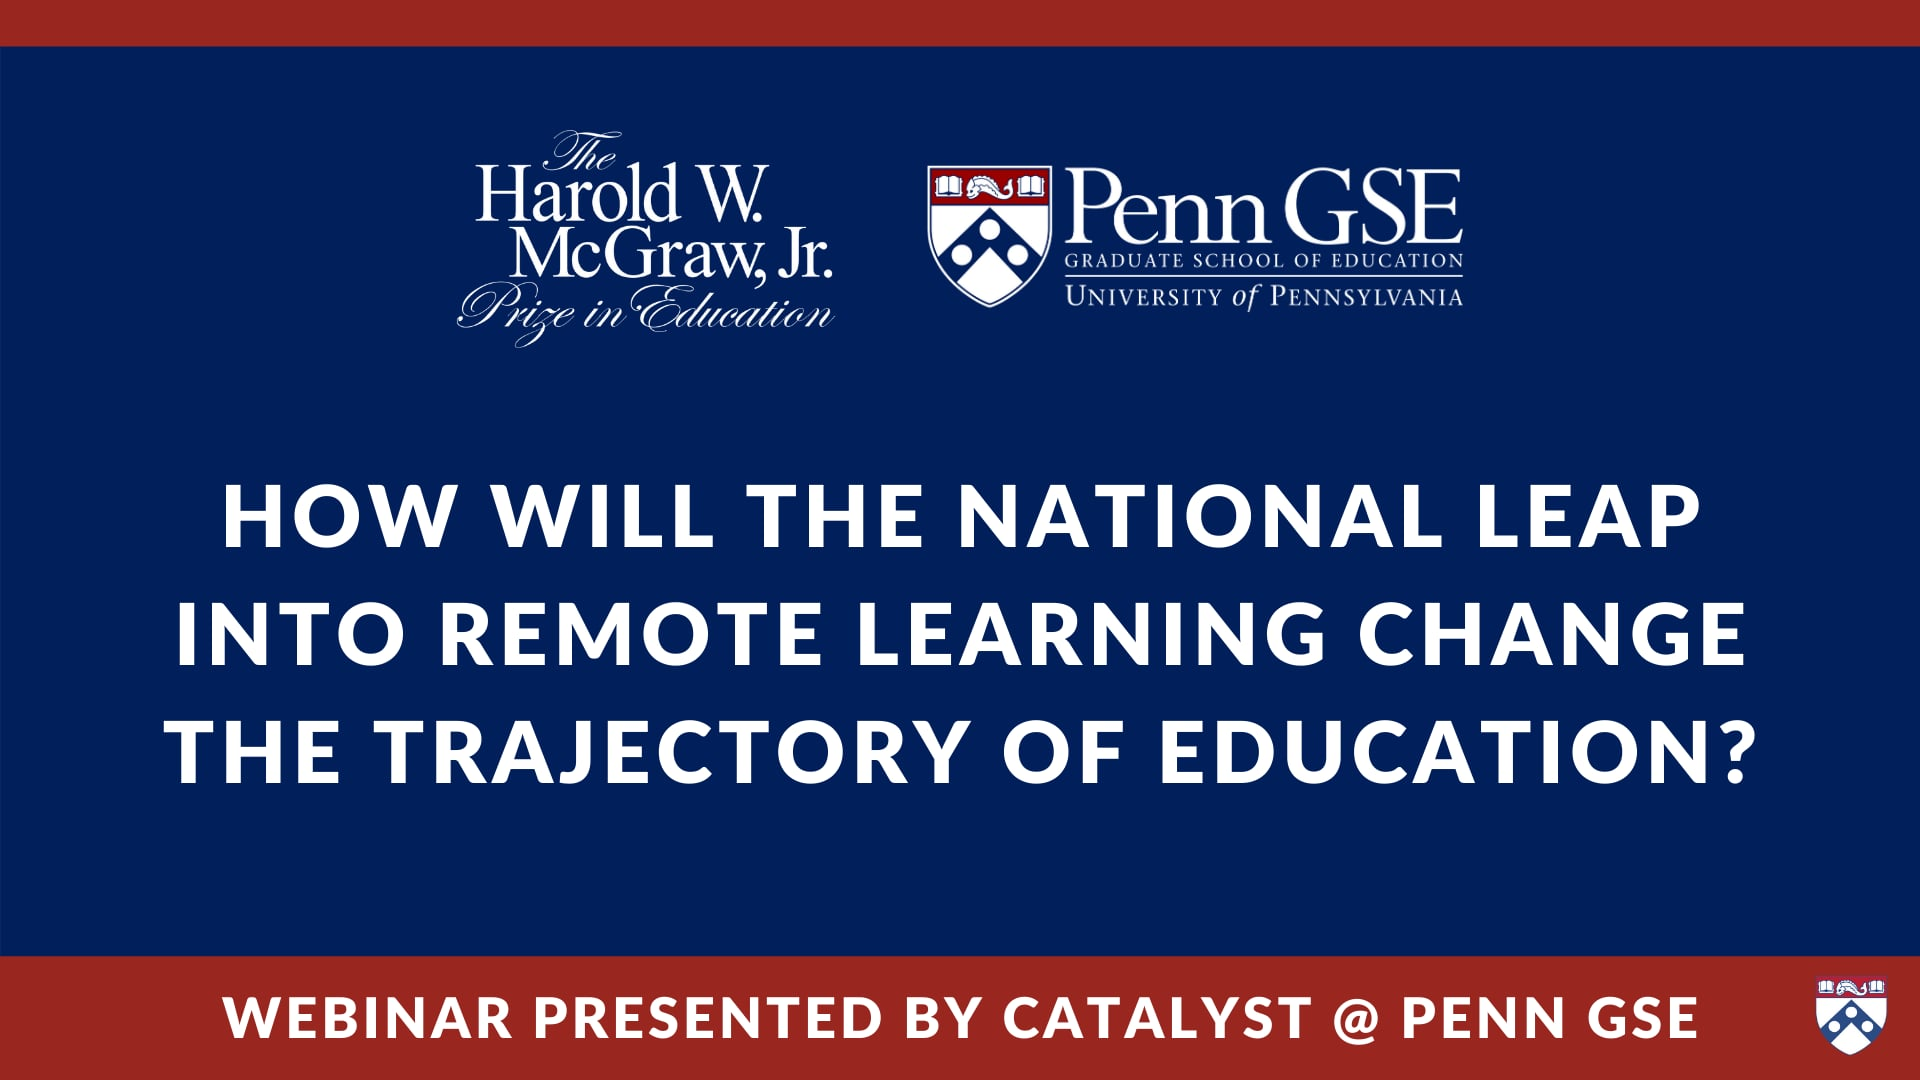 Play video: How will the National Leap into Remote Learning Change the Trajectory of Education?